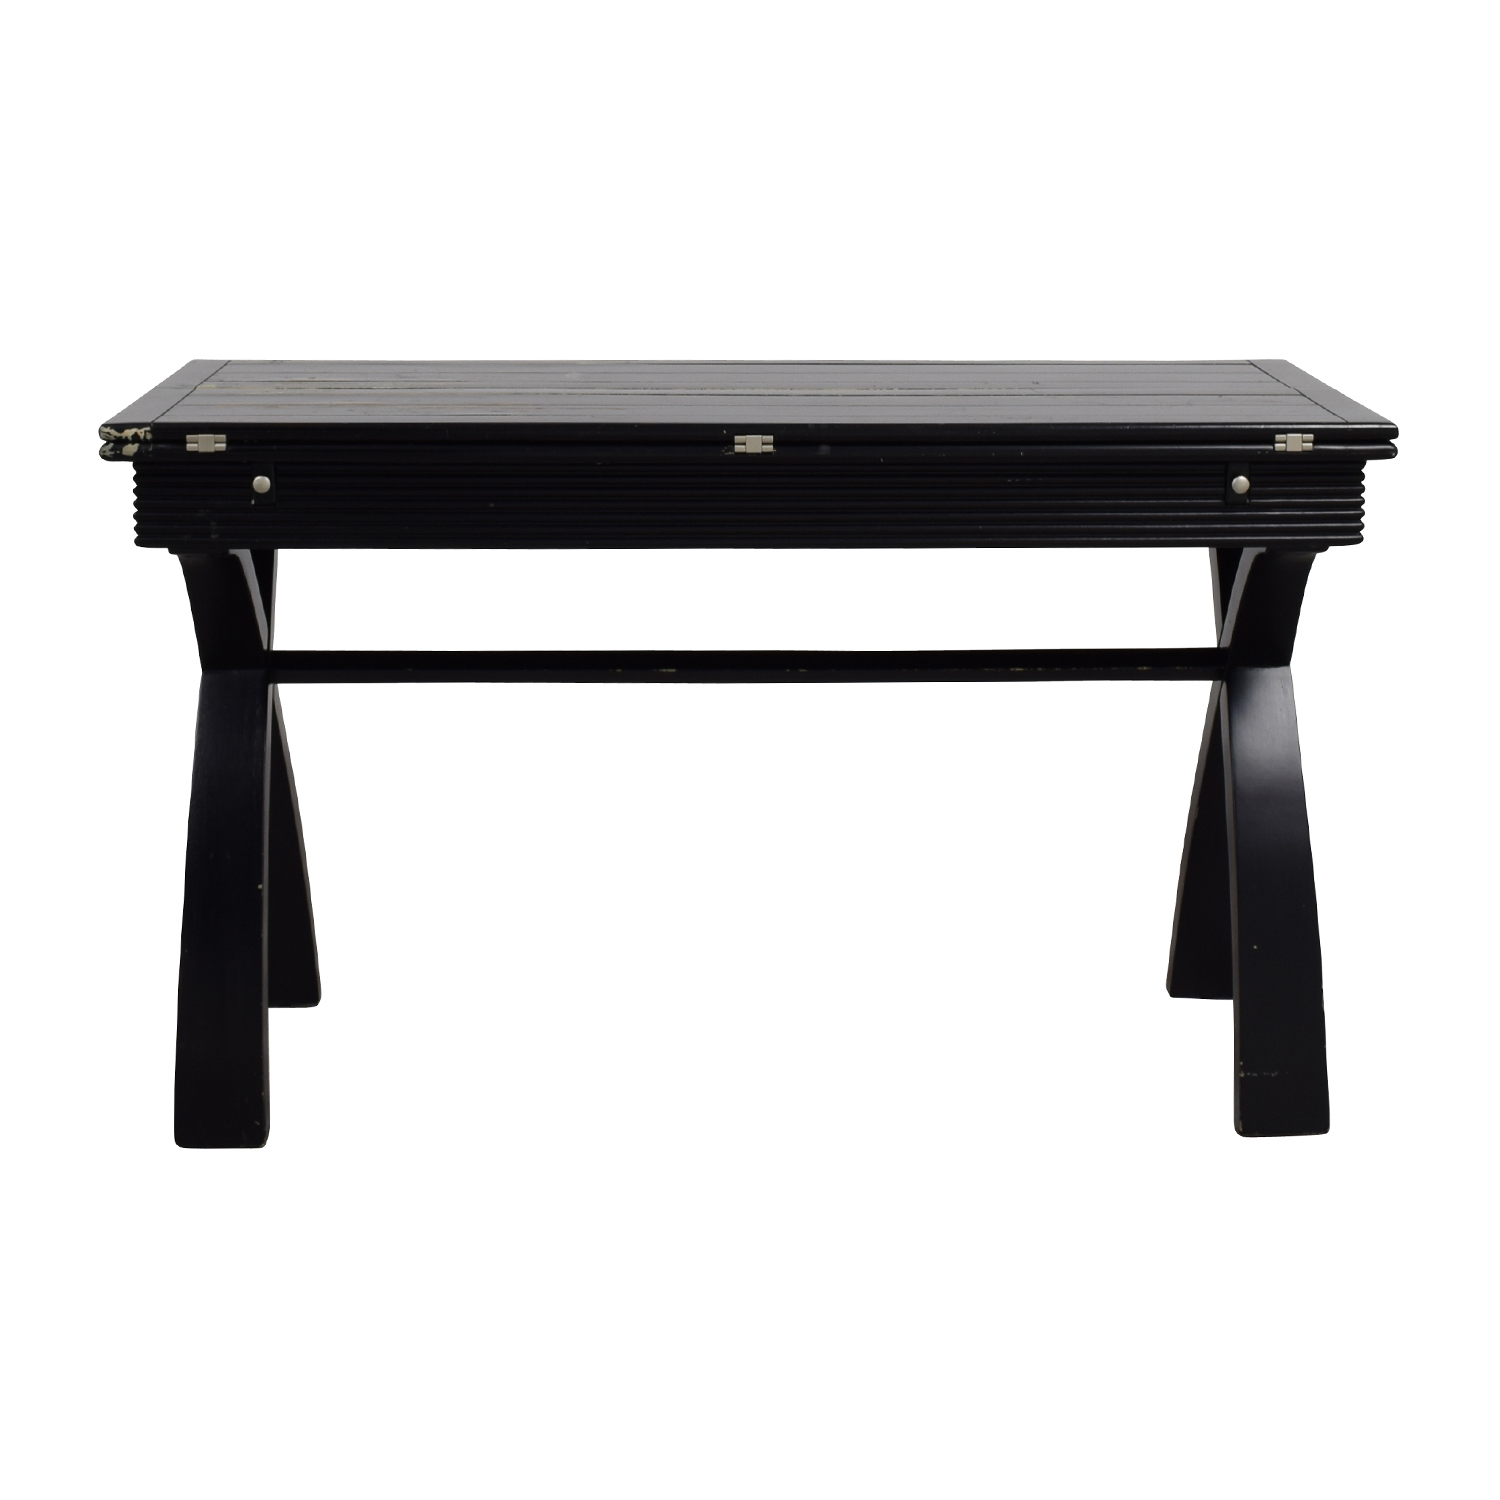 Rustic Black Extendable Desk Table Price